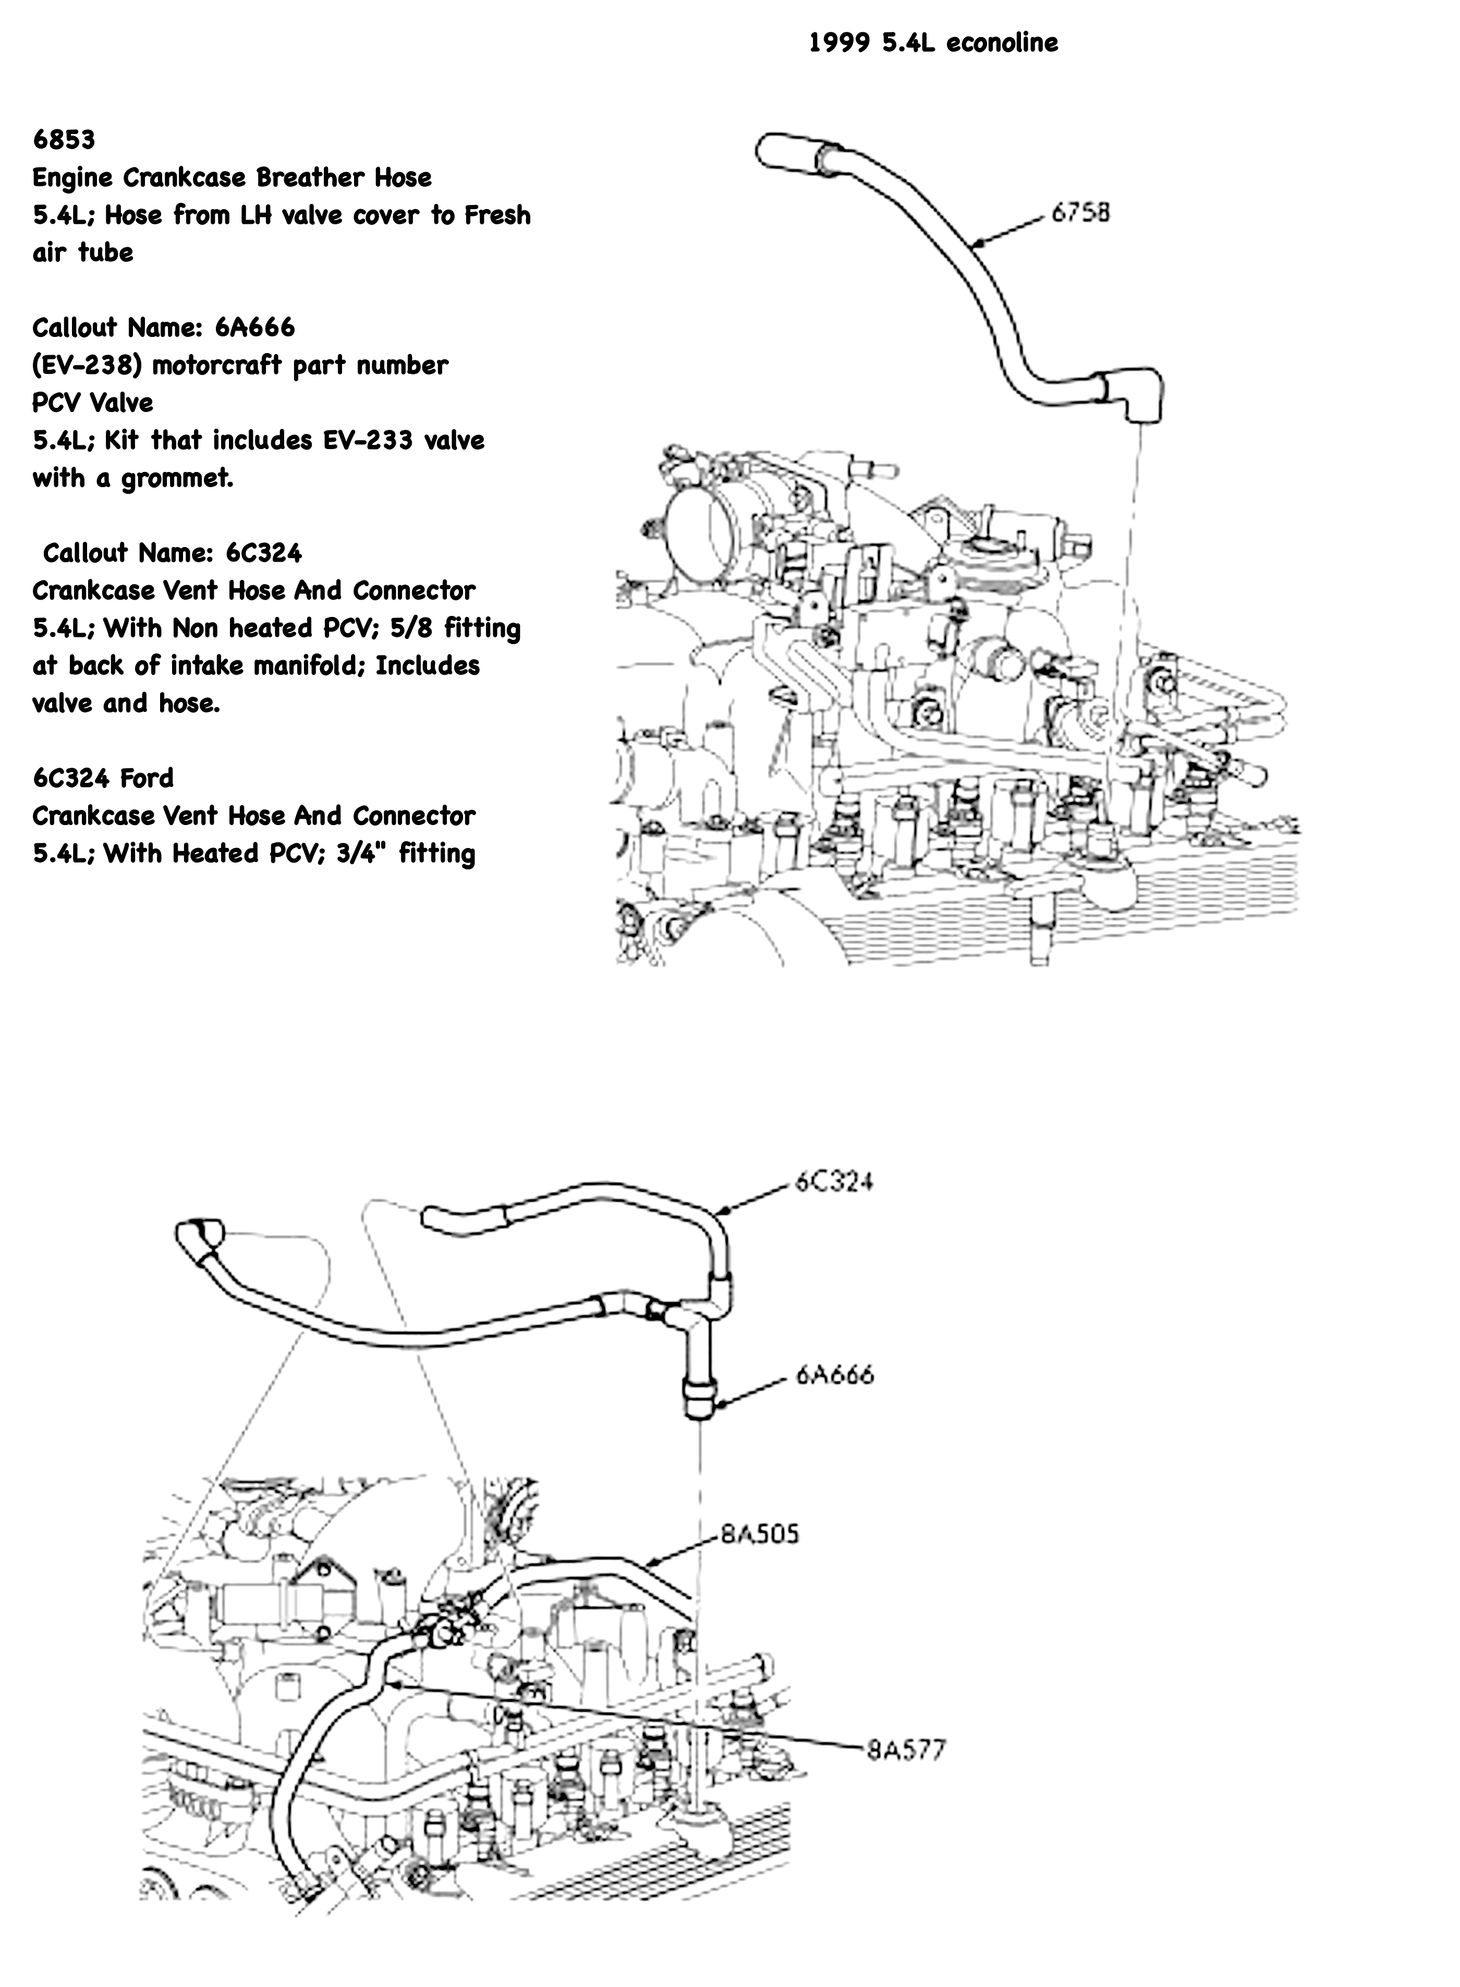 hight resolution of engine parts diagram ford 5 4l v8 wiring diagram usedengine parts diagram ford 5 4l v8